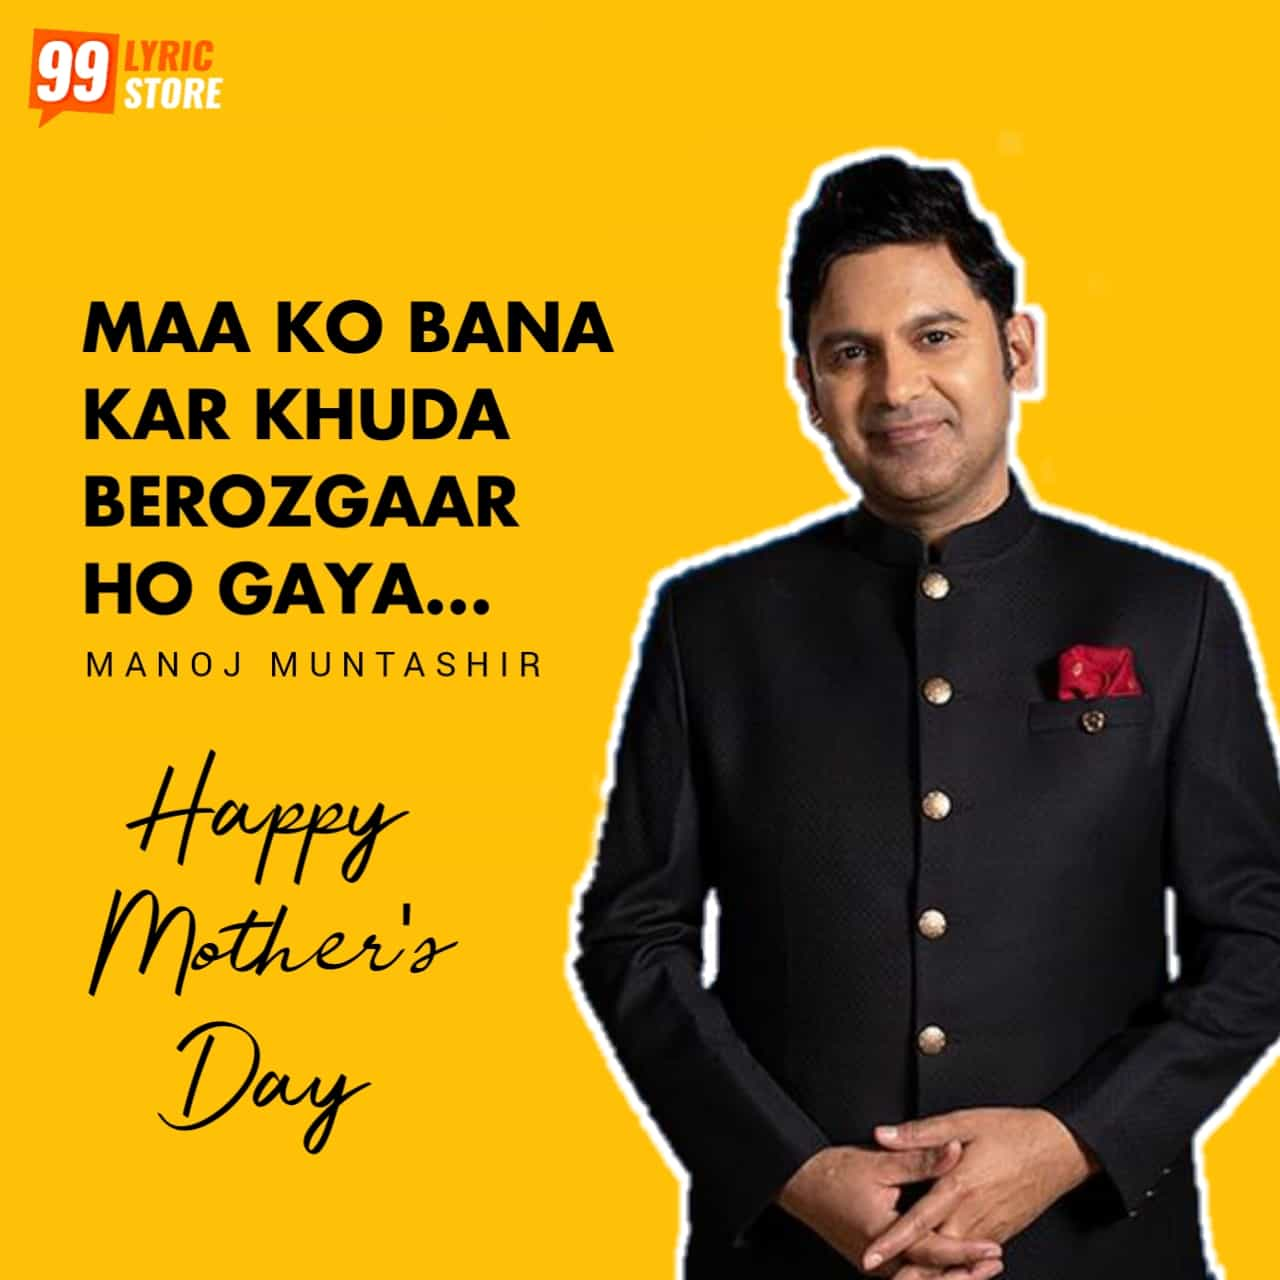 On the biggest occasion of mother's day, indian great and legend lyricist Manoj Muntashir has written a beautiful poem on mother.